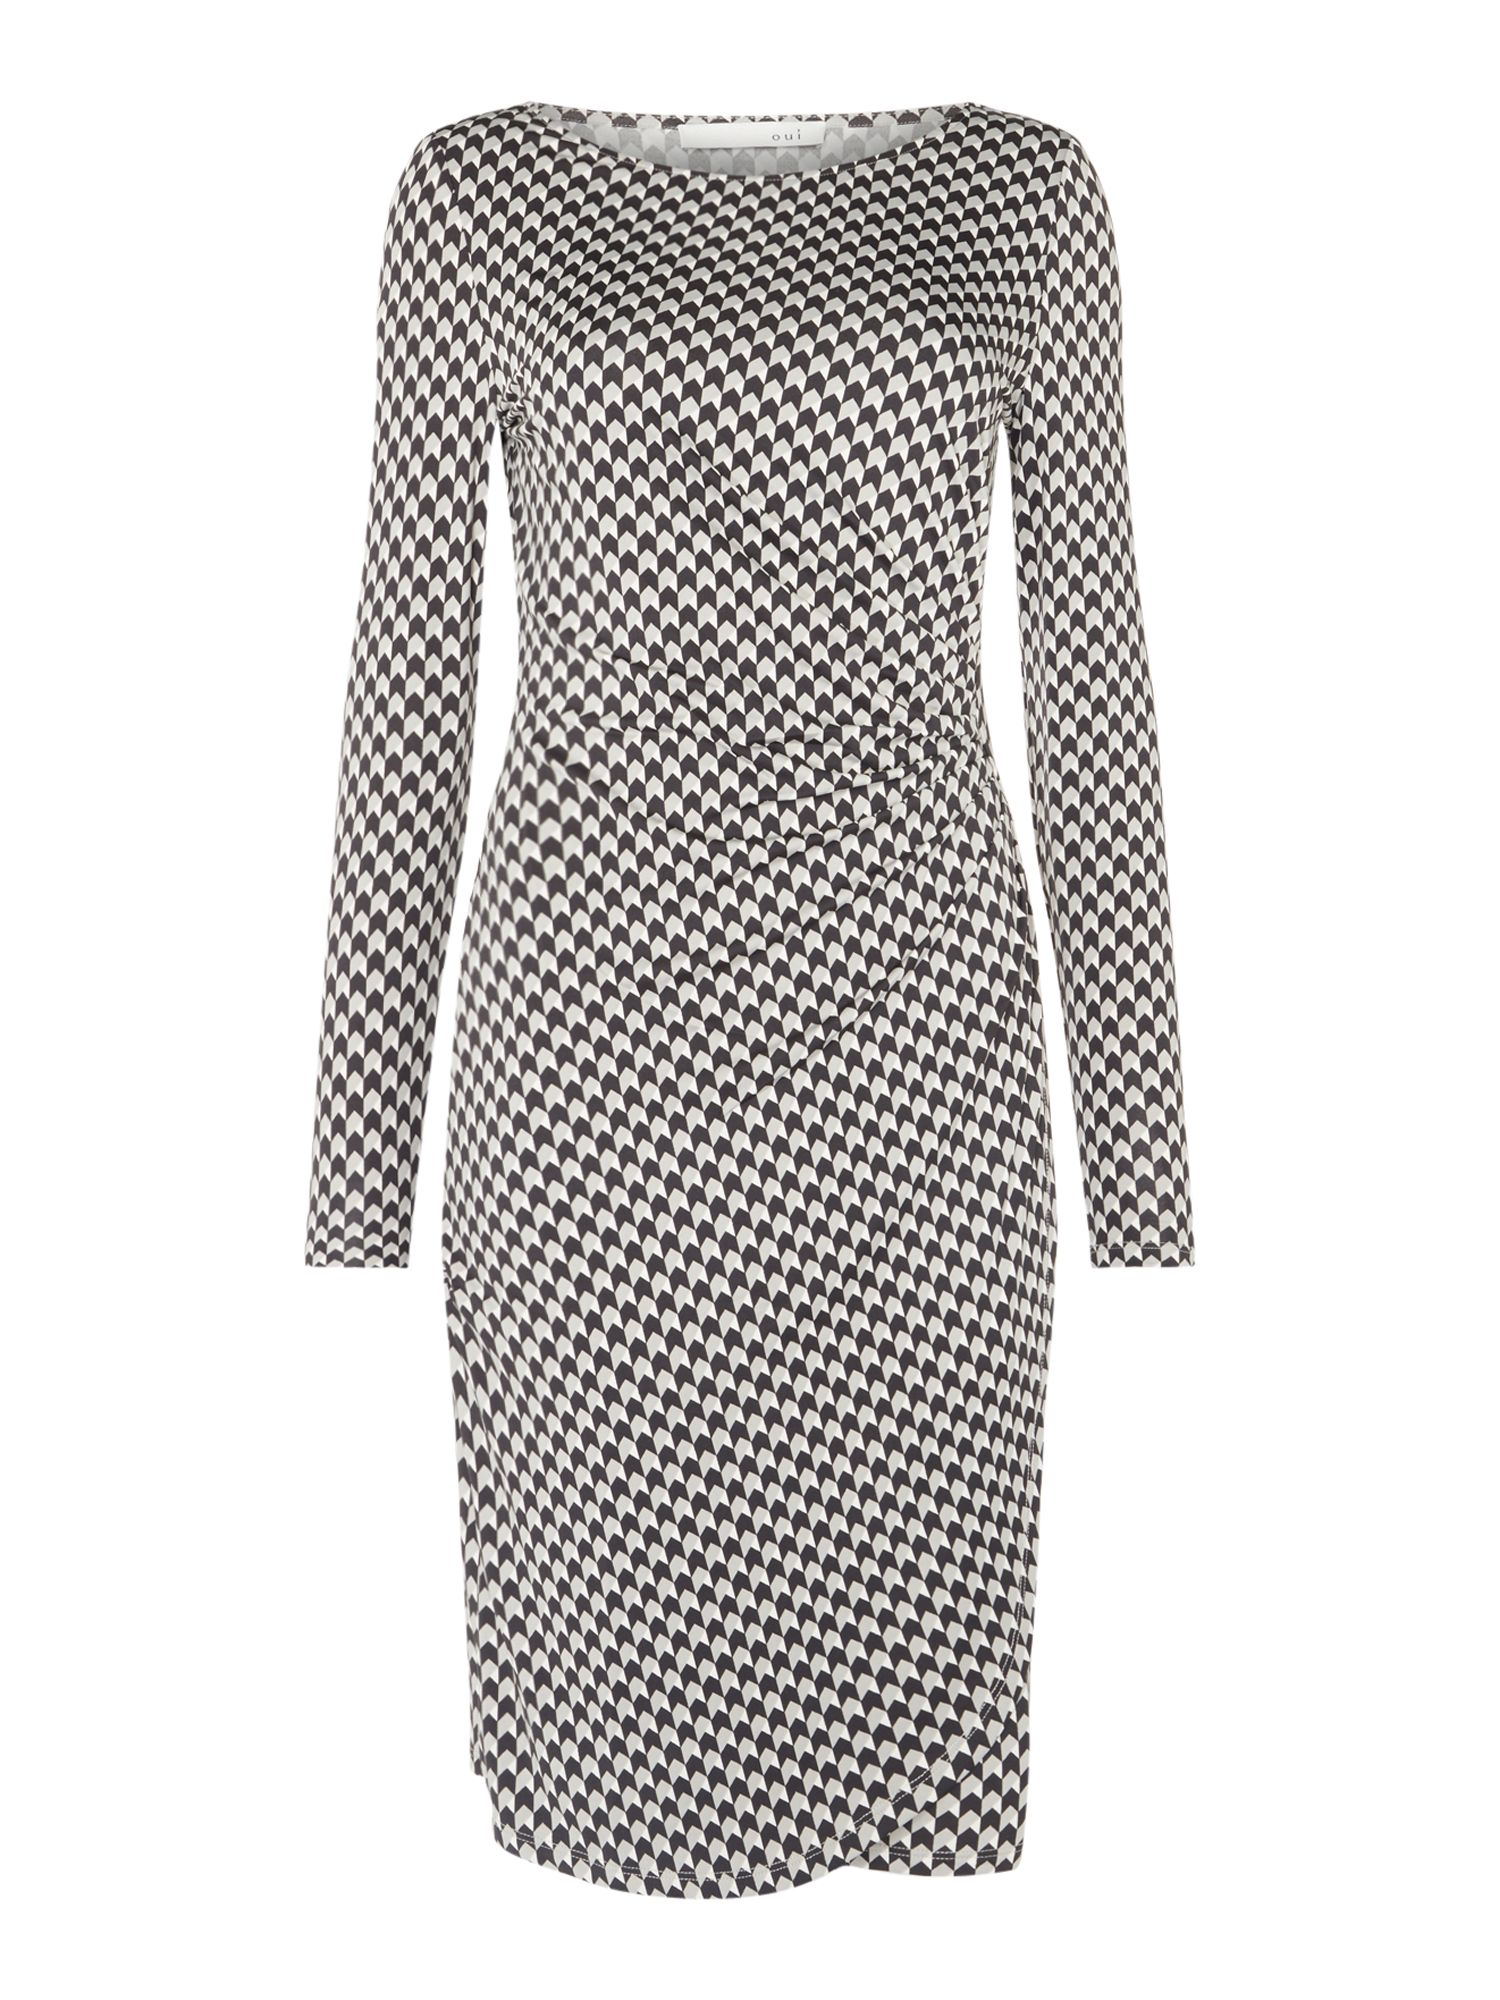 Oui Houndstooth jersey dress, Multi-Coloured